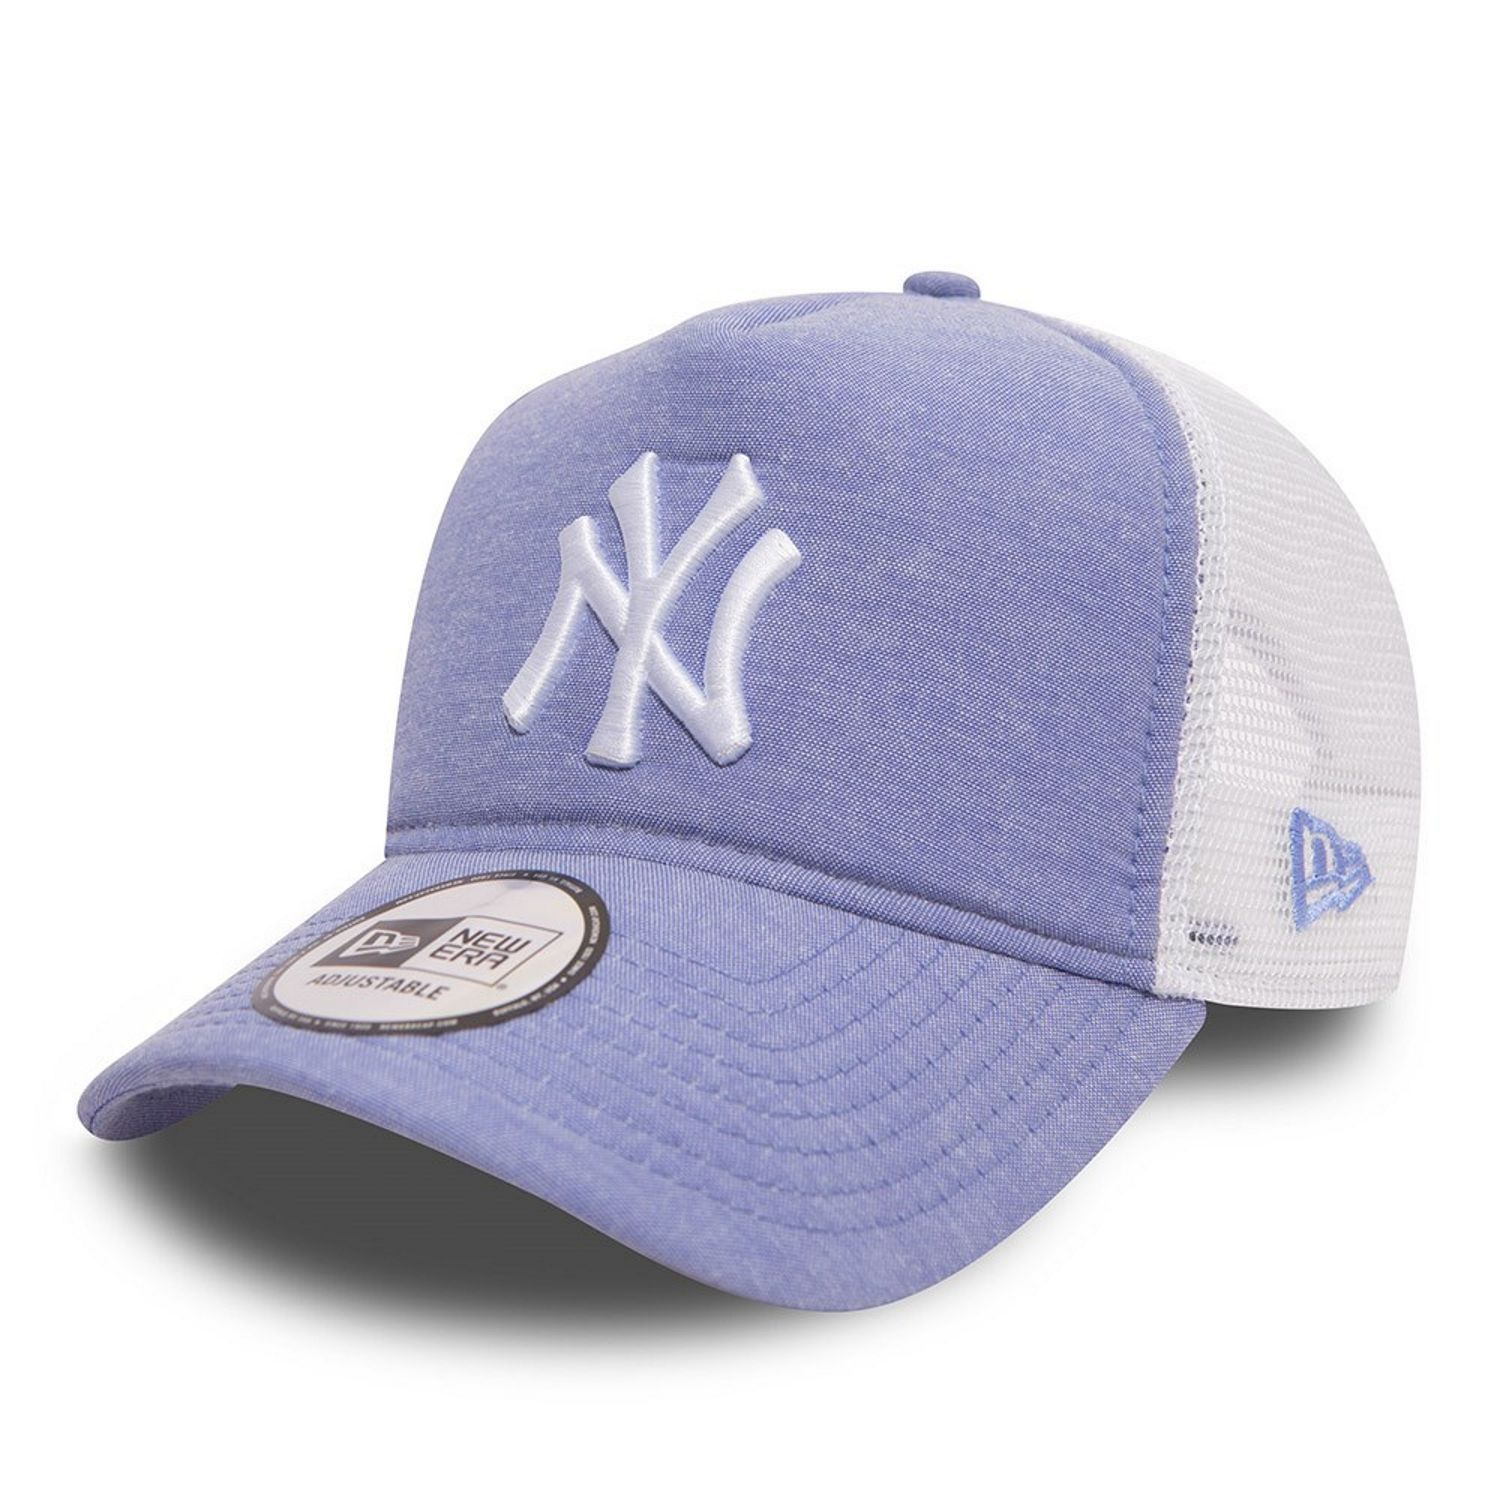 New Era MLB NY Yankees Oxford Trucker Cap Sky Blue Ny